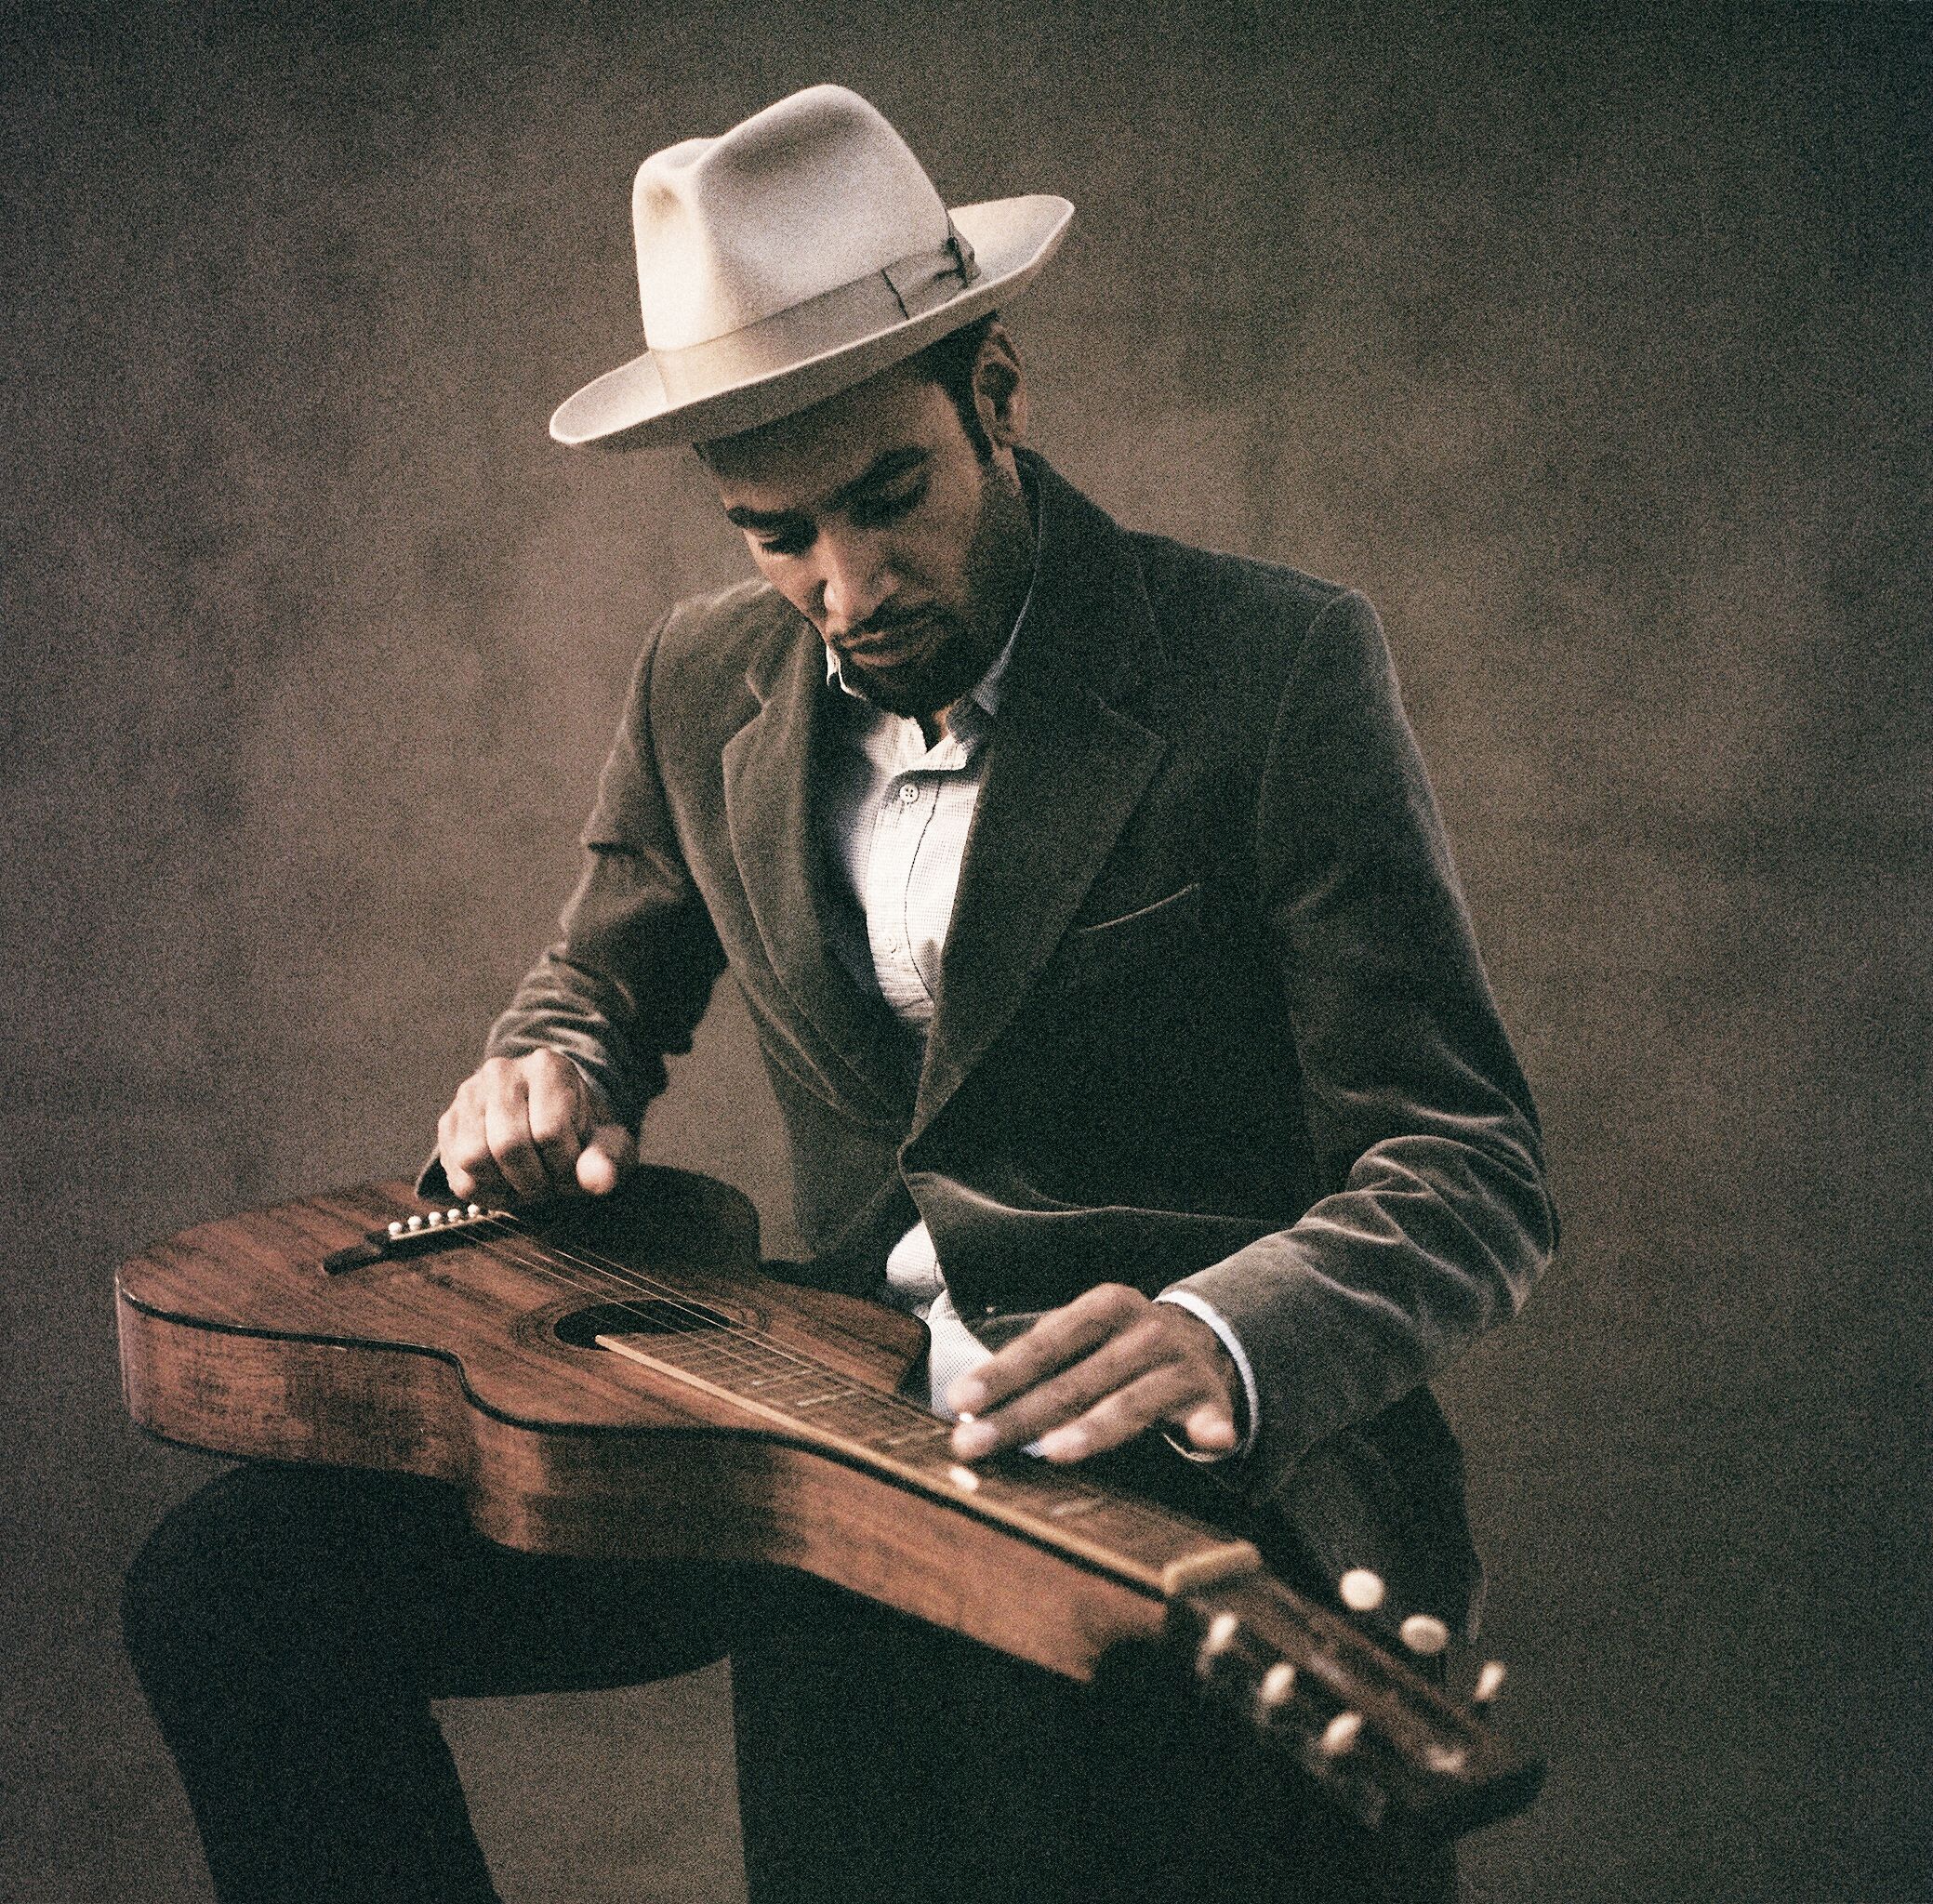 """Ben Harper. """"As long as the songs are strong, I think you can express yourself in any style and have it be soulful and have it be your own voice."""""""